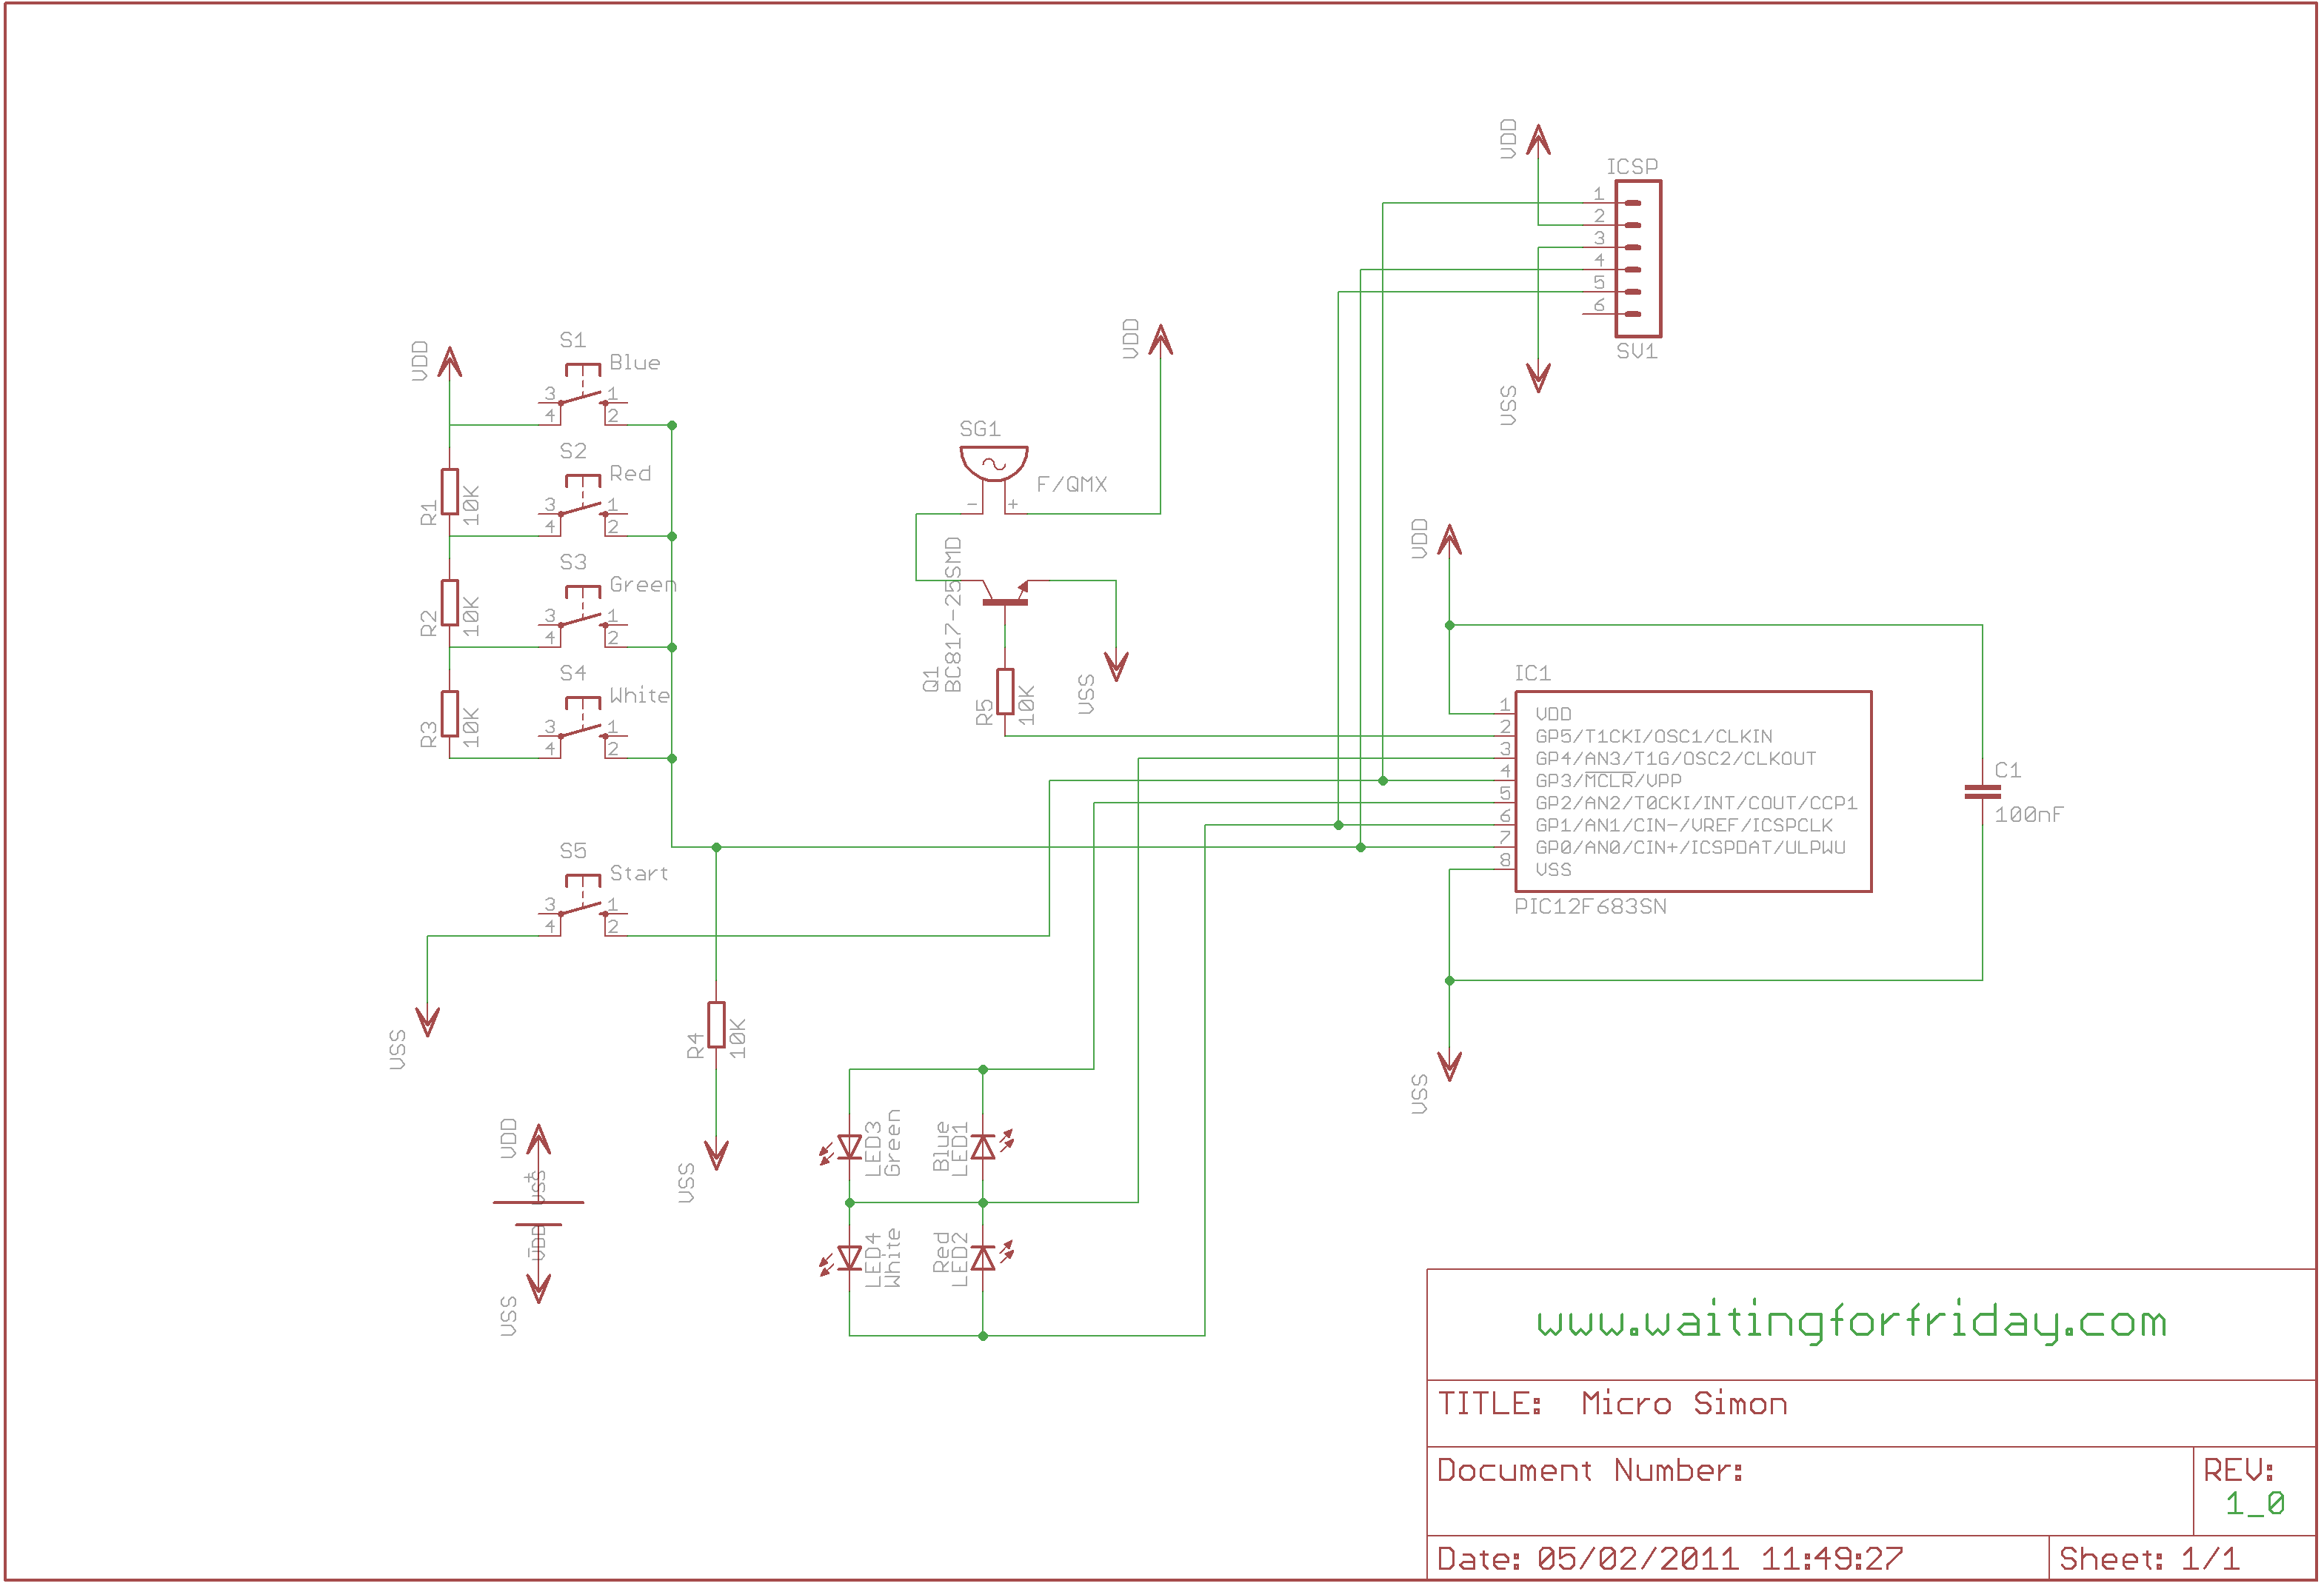 Processor In An Acorn Bbc Microcomputer Simple Power Pulse Using By Lm350 And Ne555 Circuit Diagram Voltage Divider To Adc